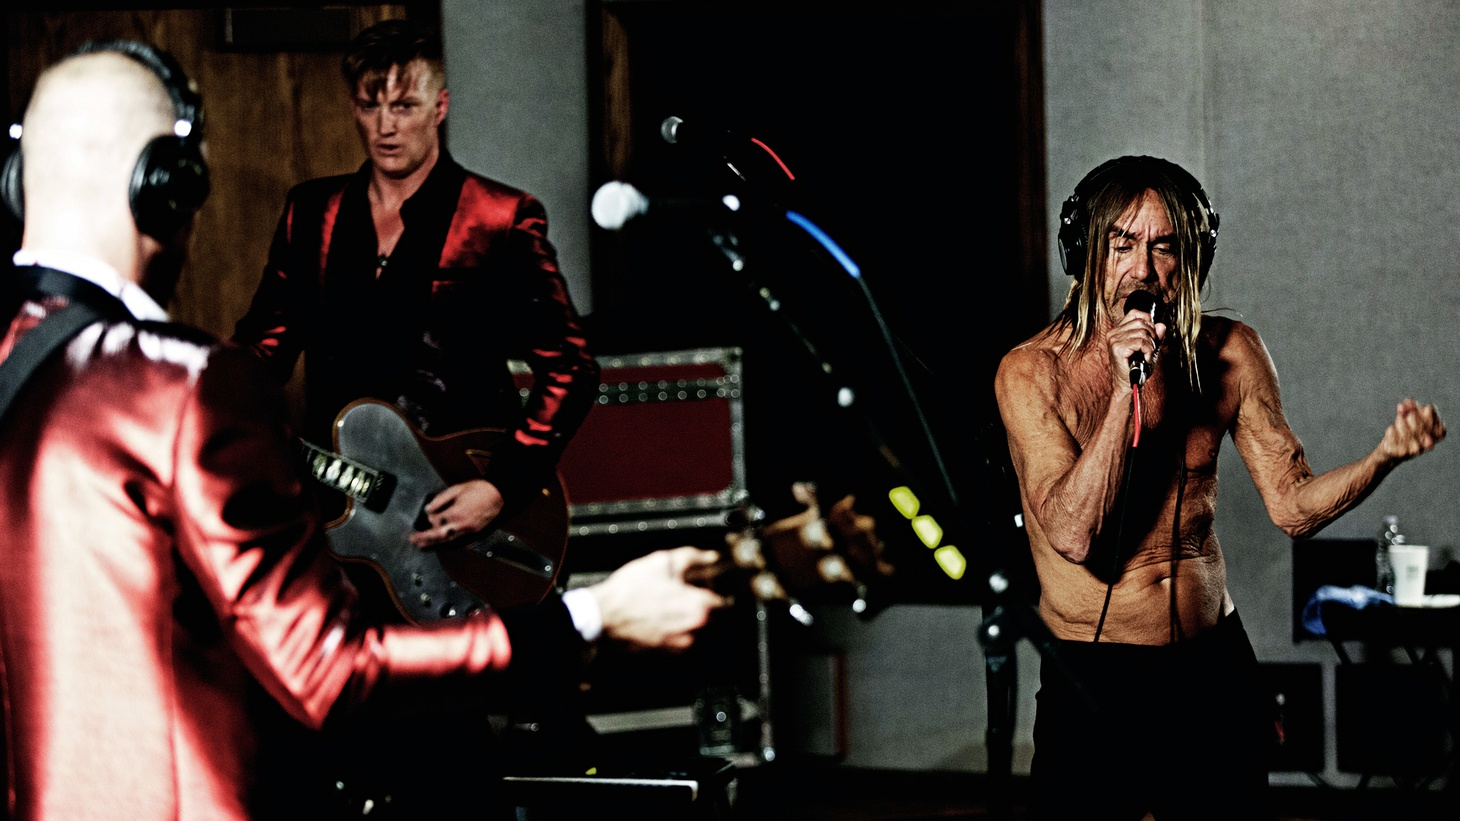 Iggy Pop is back! Post Pop Depression finds the iconic rocker returning to his Berlin-era swagger, with the help of Josh Homme from Queens of the Stone Age and an all-star group of musicians.